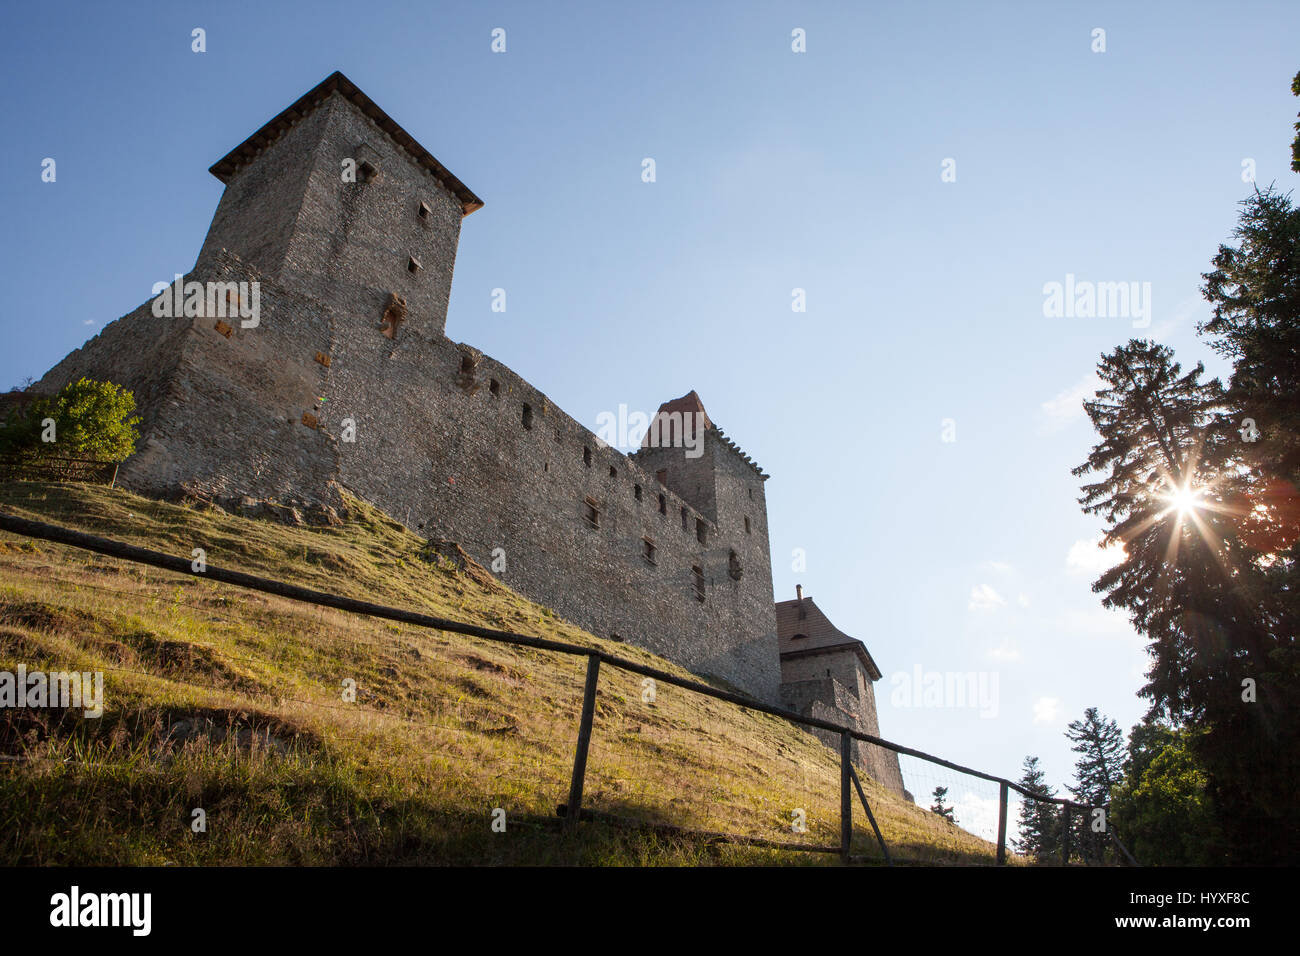 Castle Kasperk sits atop a hill as the sun bursts through the trees in the Bohemian forest of Sumava. - Stock Image